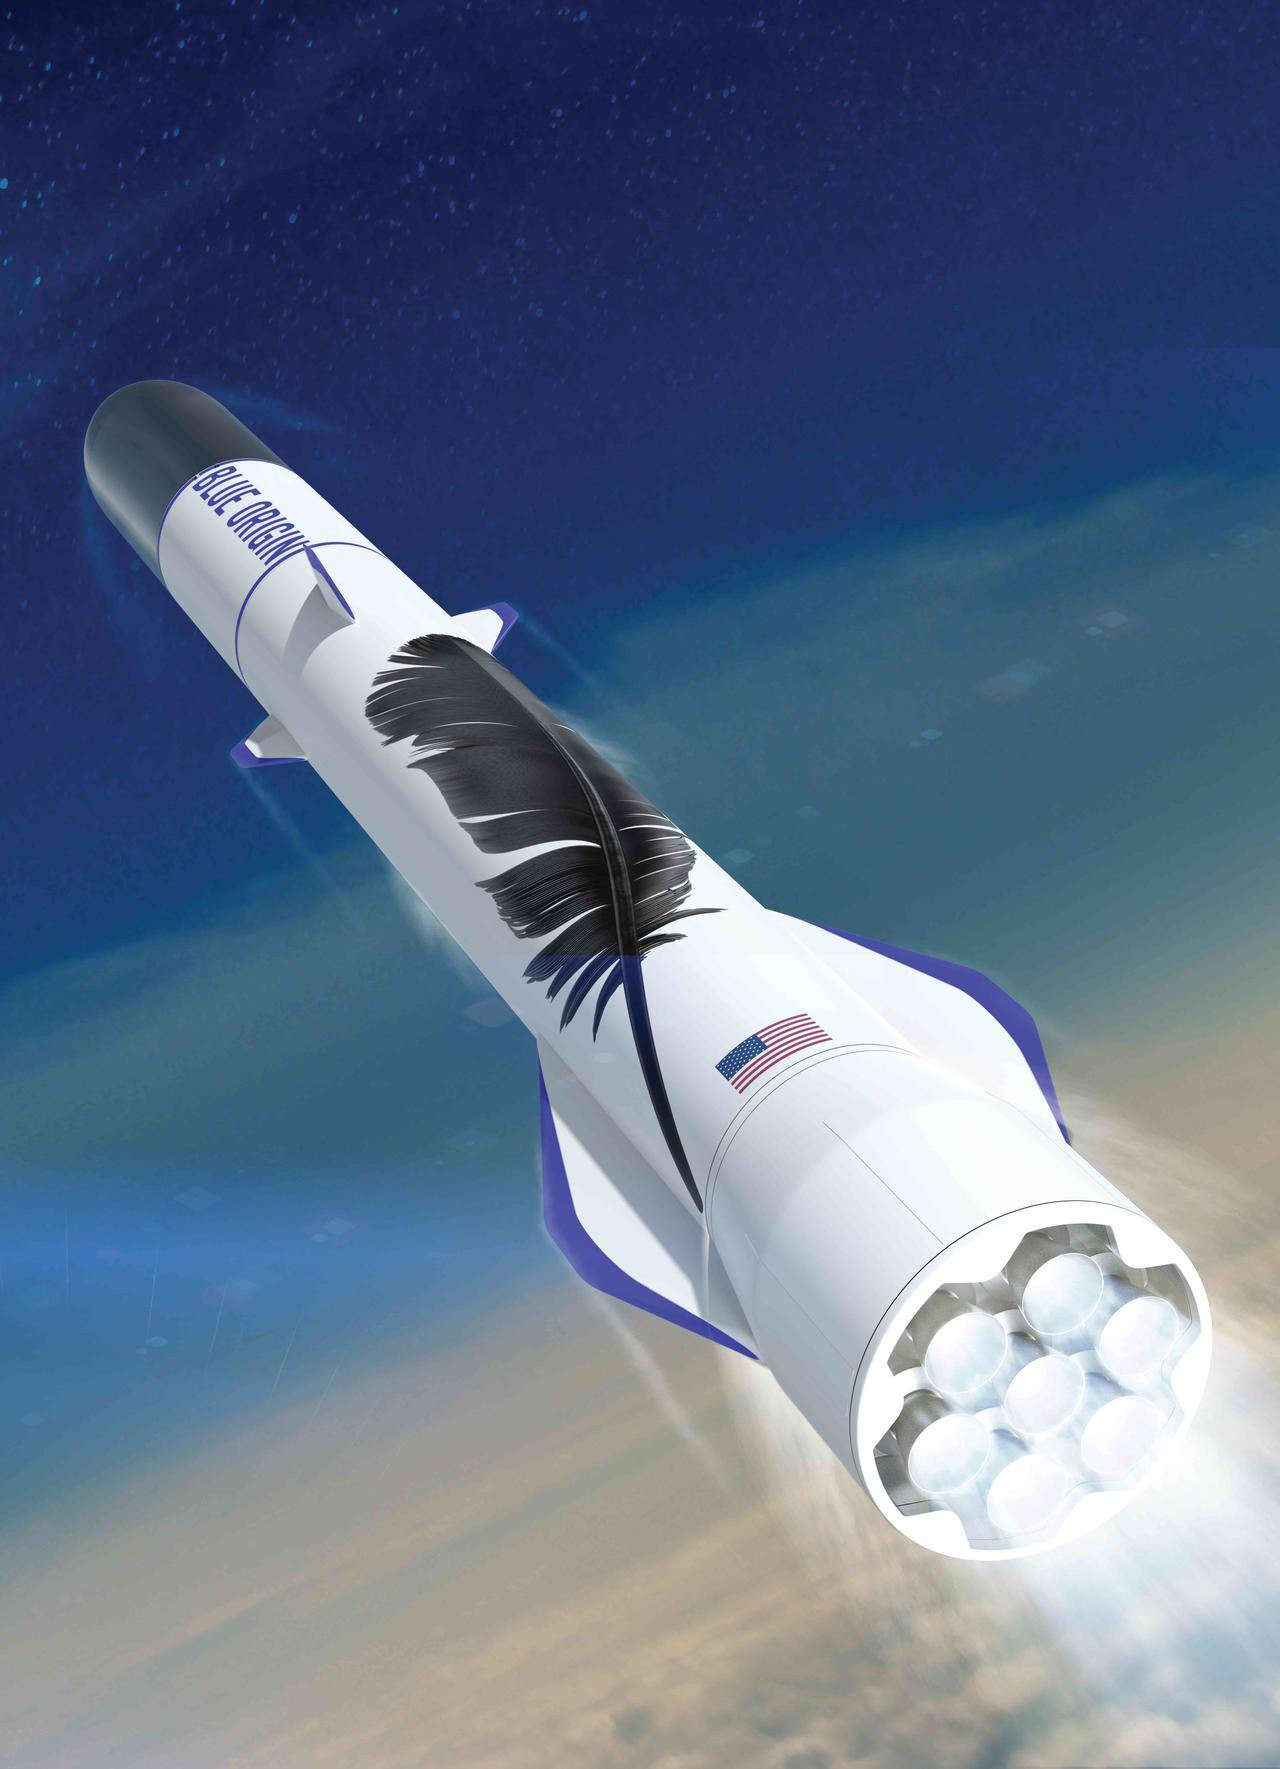 New Glenn render May 2018 (Blue Origin)